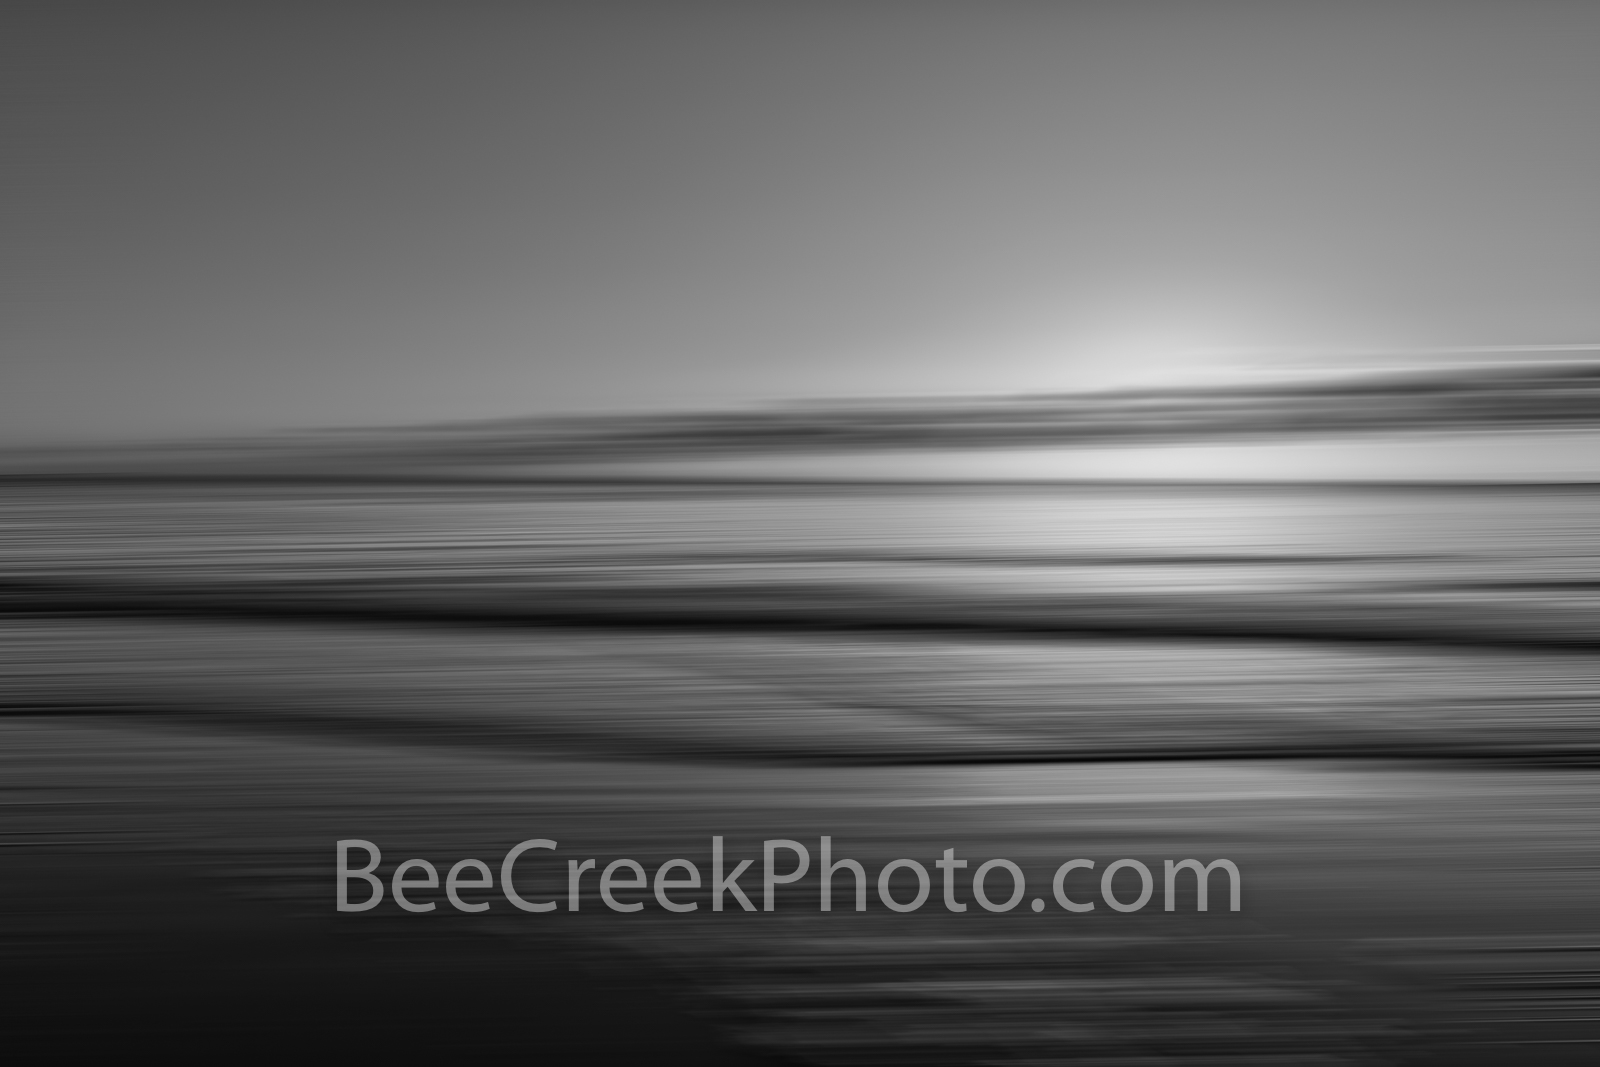 Ocean Wave Abstract BW - Ocean waves as a long exposure blur as a digital abstract in black and white. Digital art which creates...